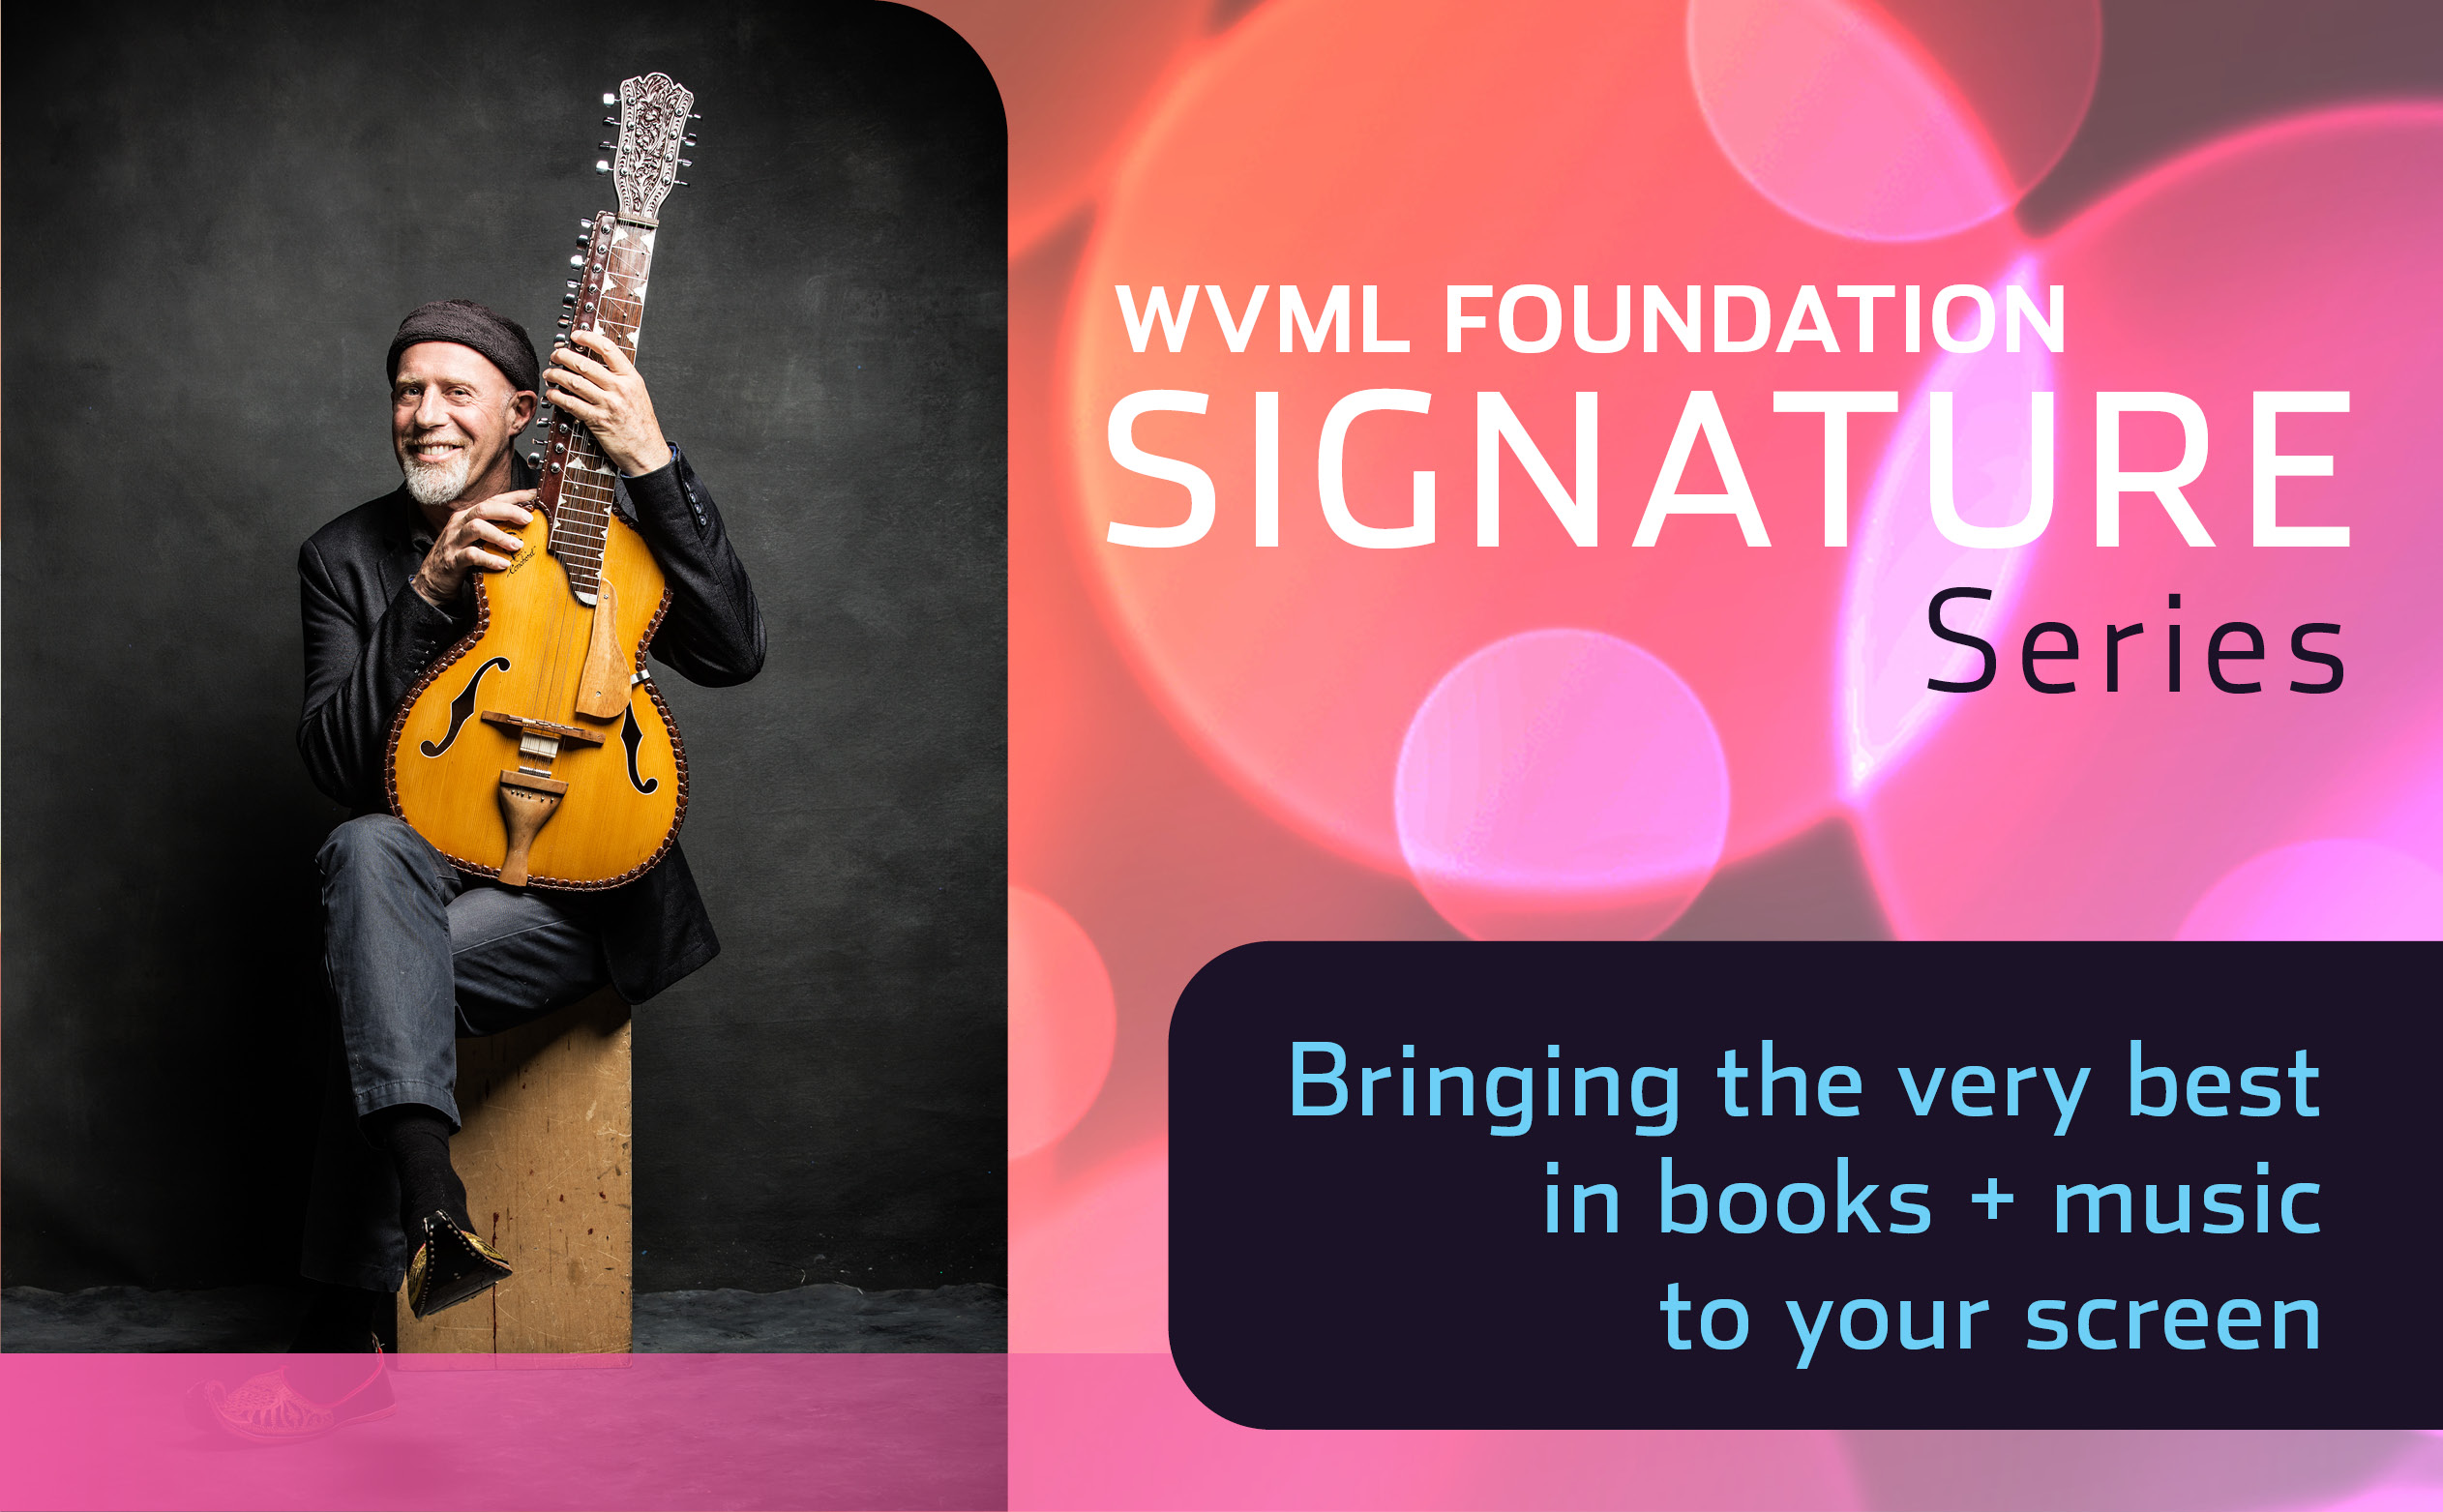 Photo of Harry Manx. WVML Foundation Signature Series. Bringing the best in books and music to your screen.